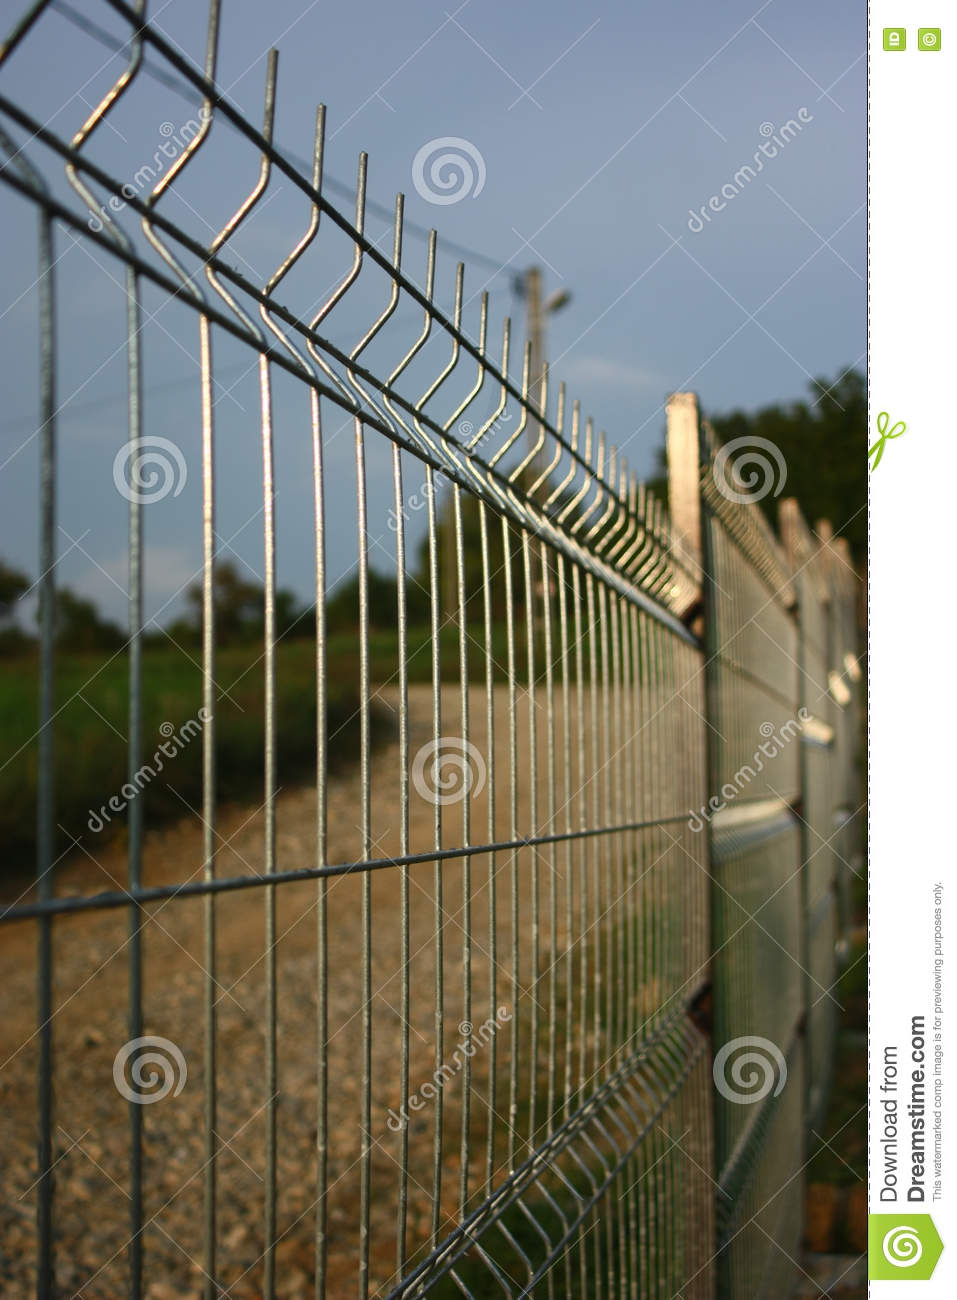 Welded Wire Fence. Stock Photo - Image: 80895670